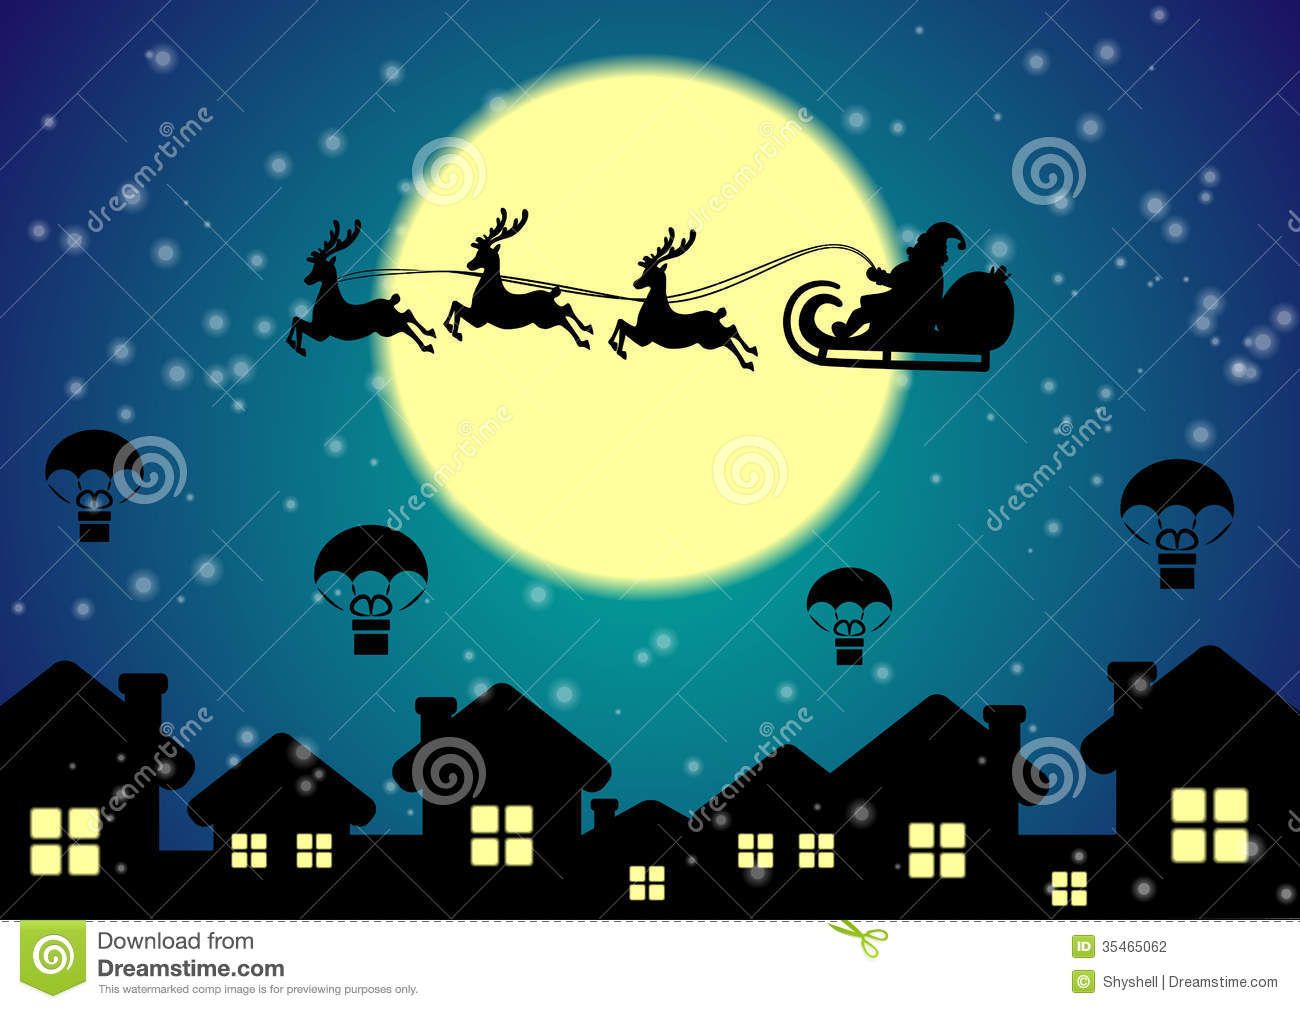 Santa Claus With Reindeer Flies Over Night City Stock